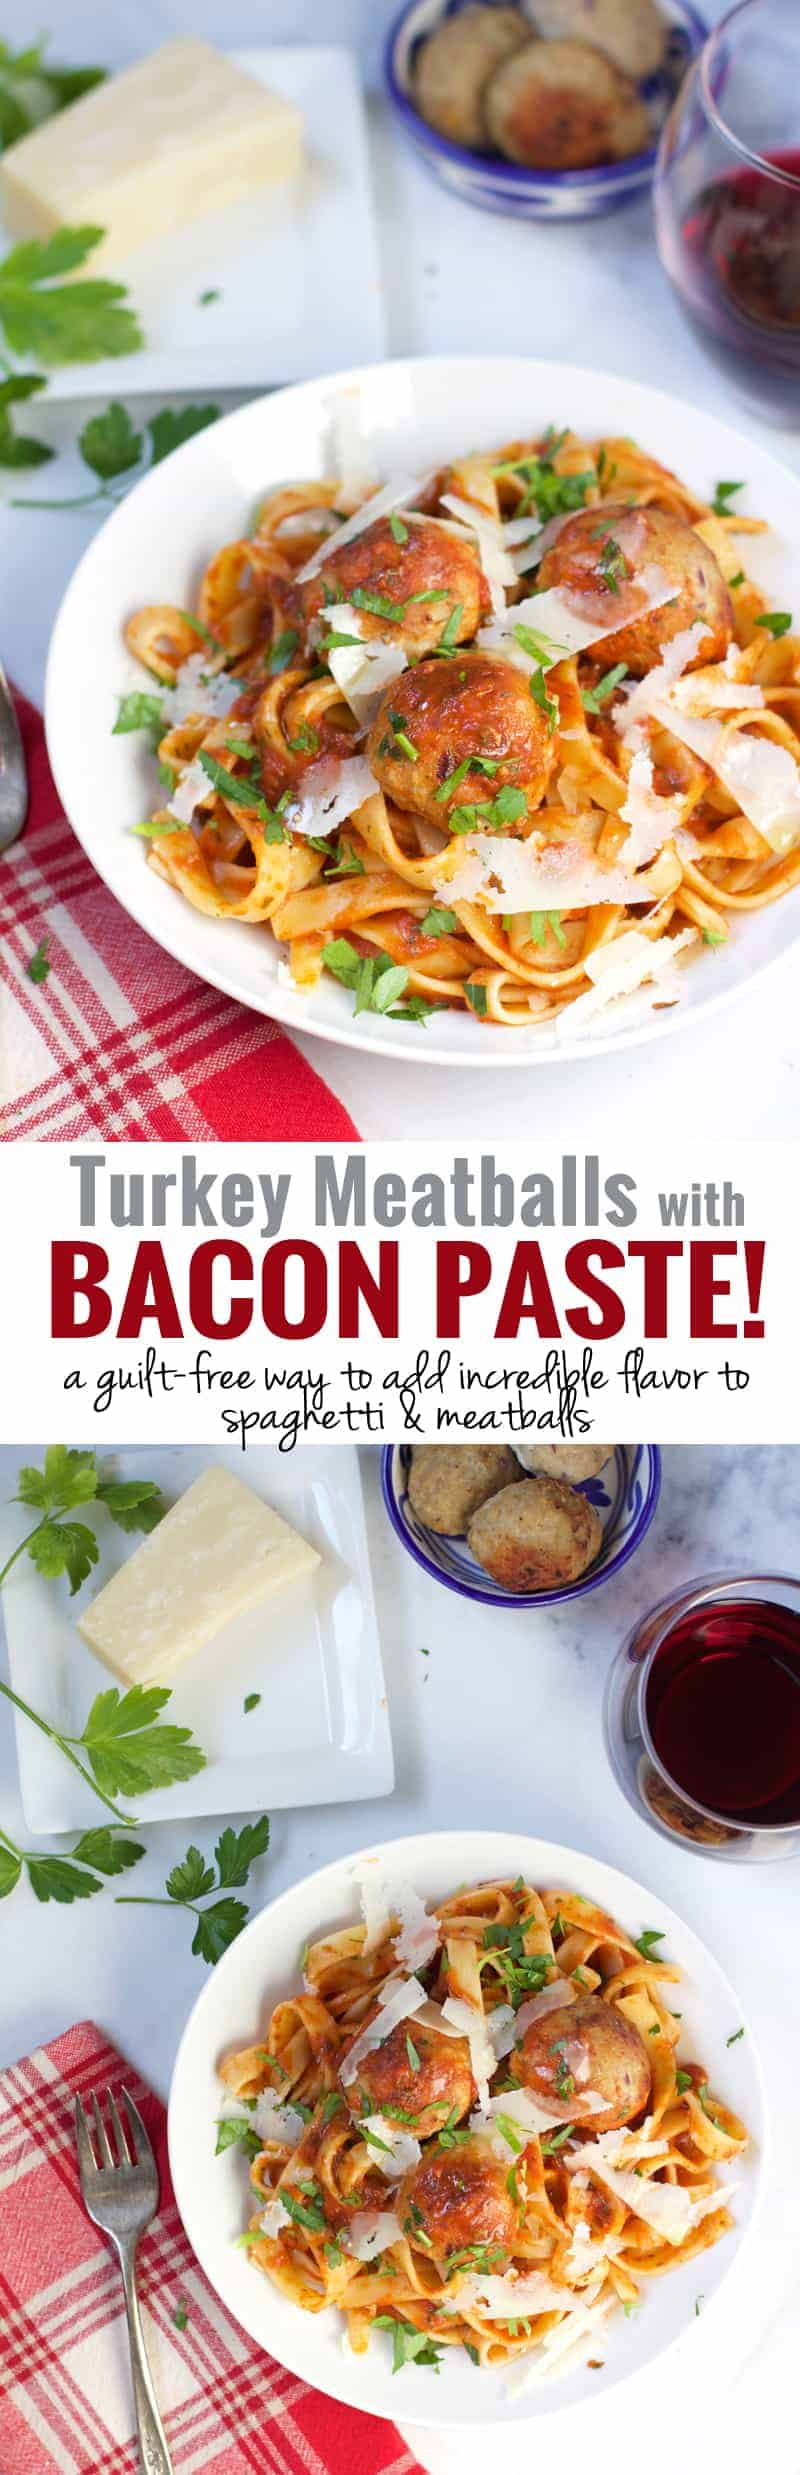 Turkey Meatballs with Bacon Paste. An incredible (and guilt-free!) way to add incredible flavor to your spaghetti and meatballs! Tender, juicy, and full of incredible flavor!